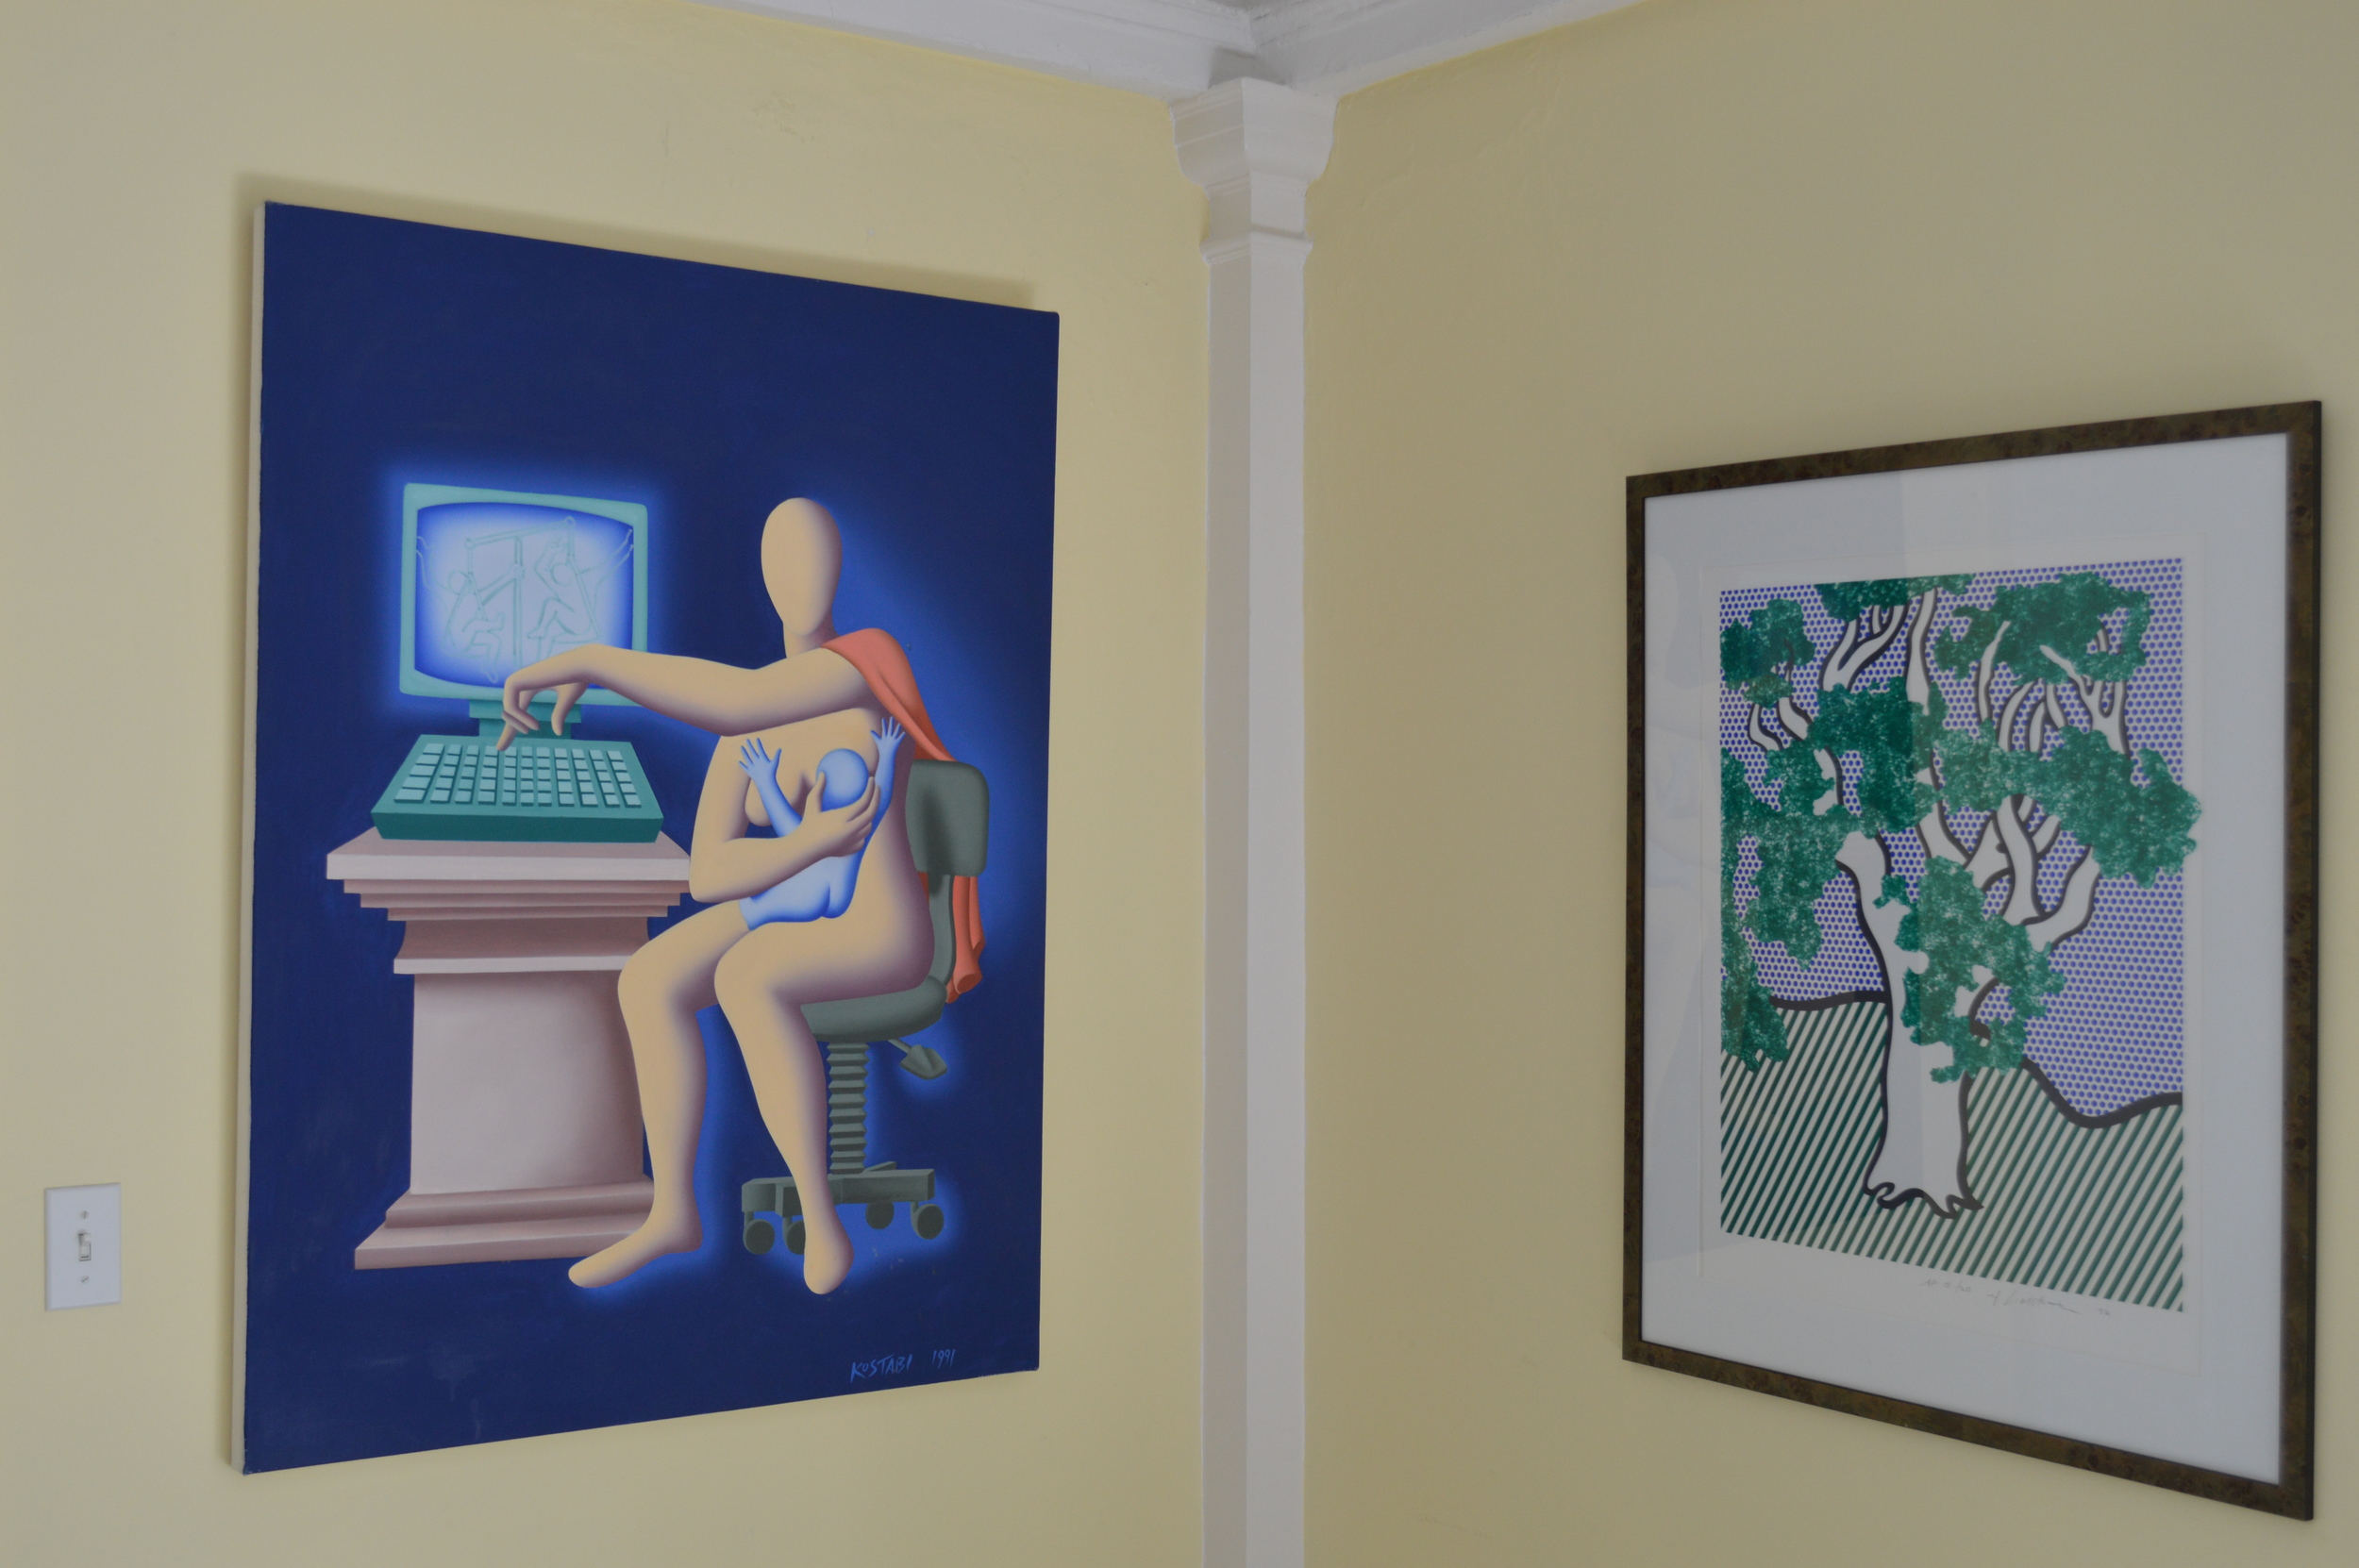 In 1991,Jodi Nassexplained to artist Mark Kostabi that technology was women's liberation; it allowed women to work while breastfeeding. Mark Kostabi painted the scene later that year. It pictures Jodi Nass working whilenursing Victory Club founder, Stephanie Nass.